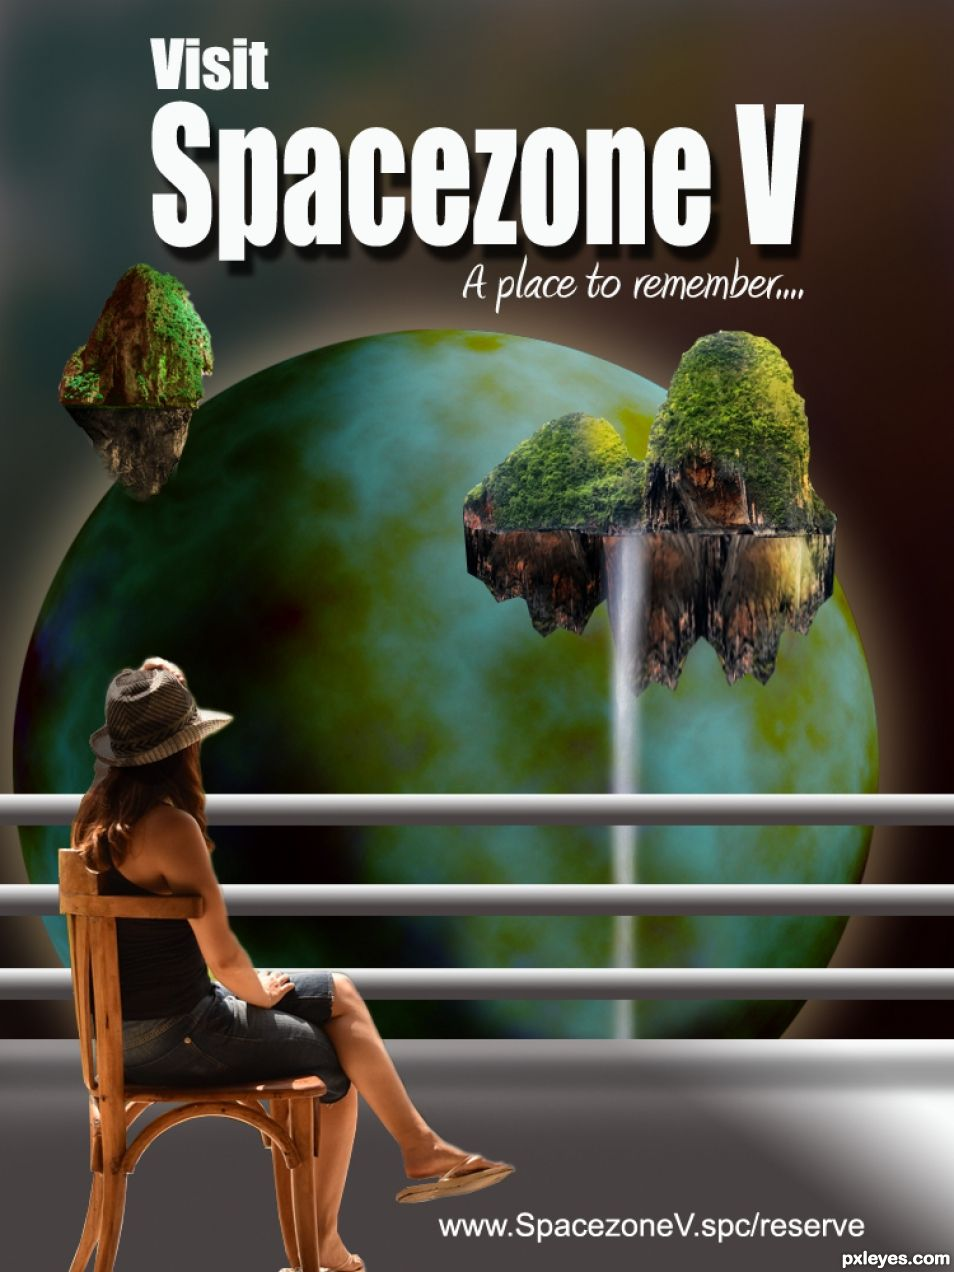 SpacezoneV